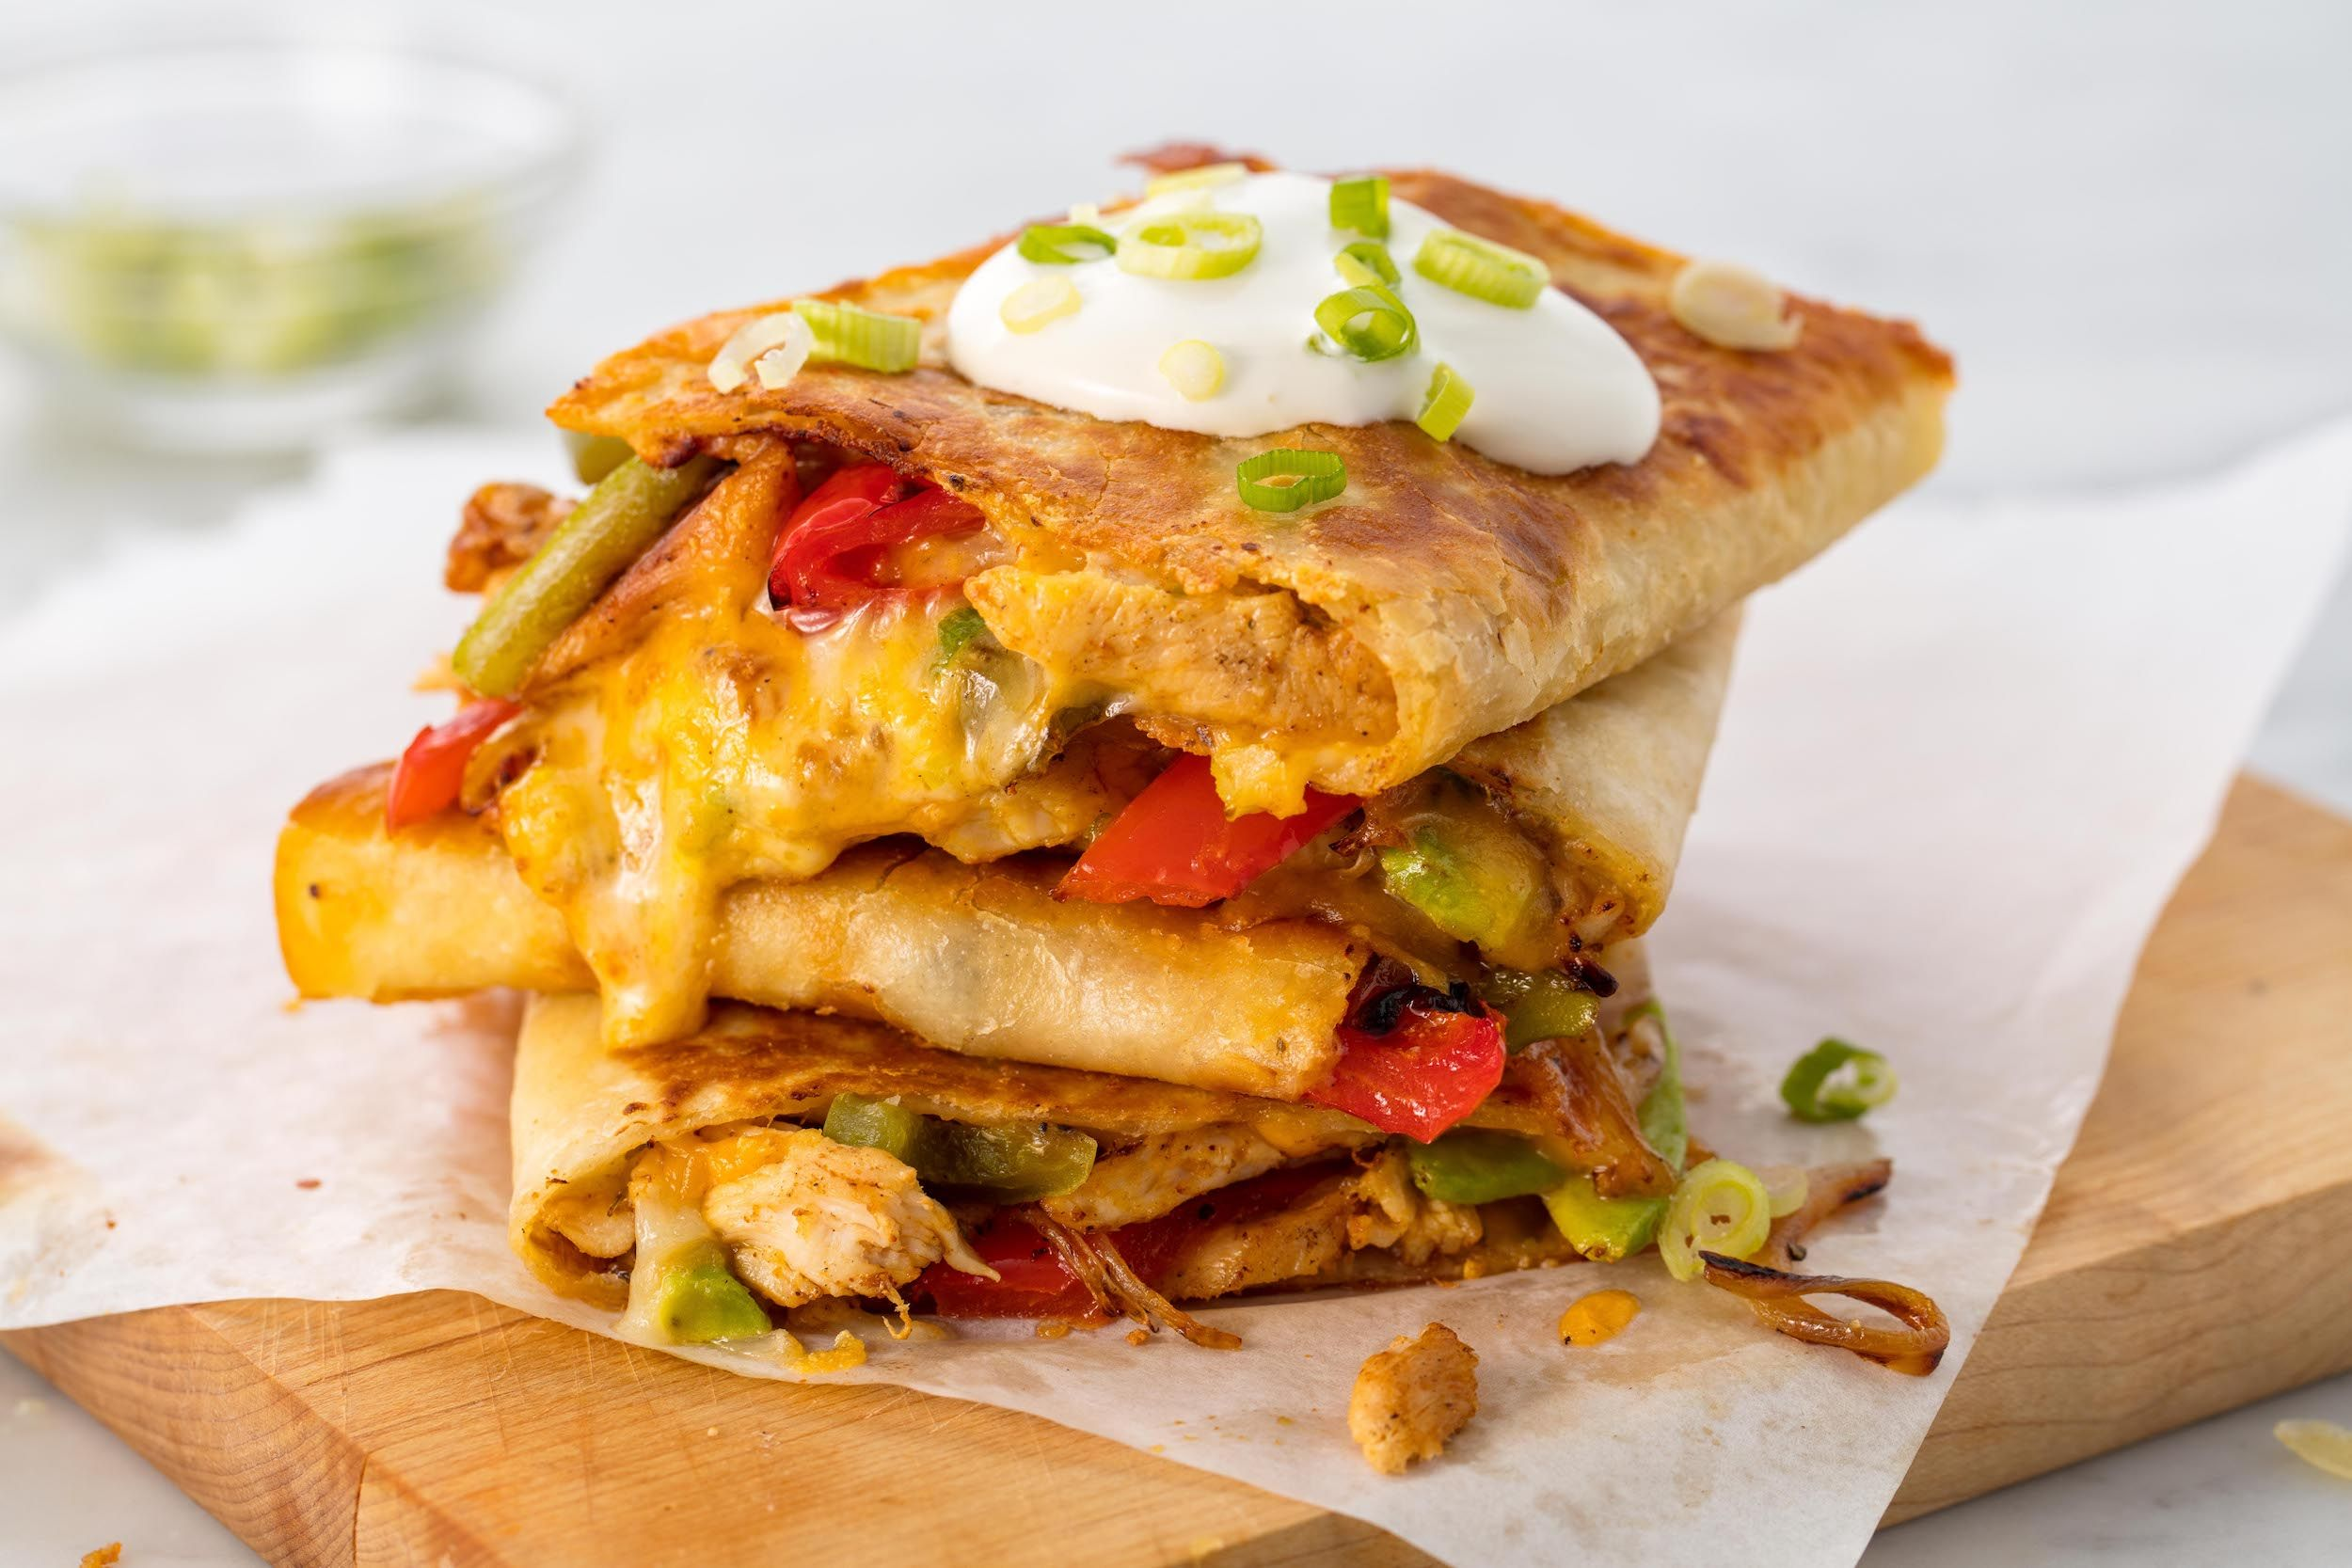 Easy Chicken Quesadilla Recipe How To Make The Best Chicken Quesadillas